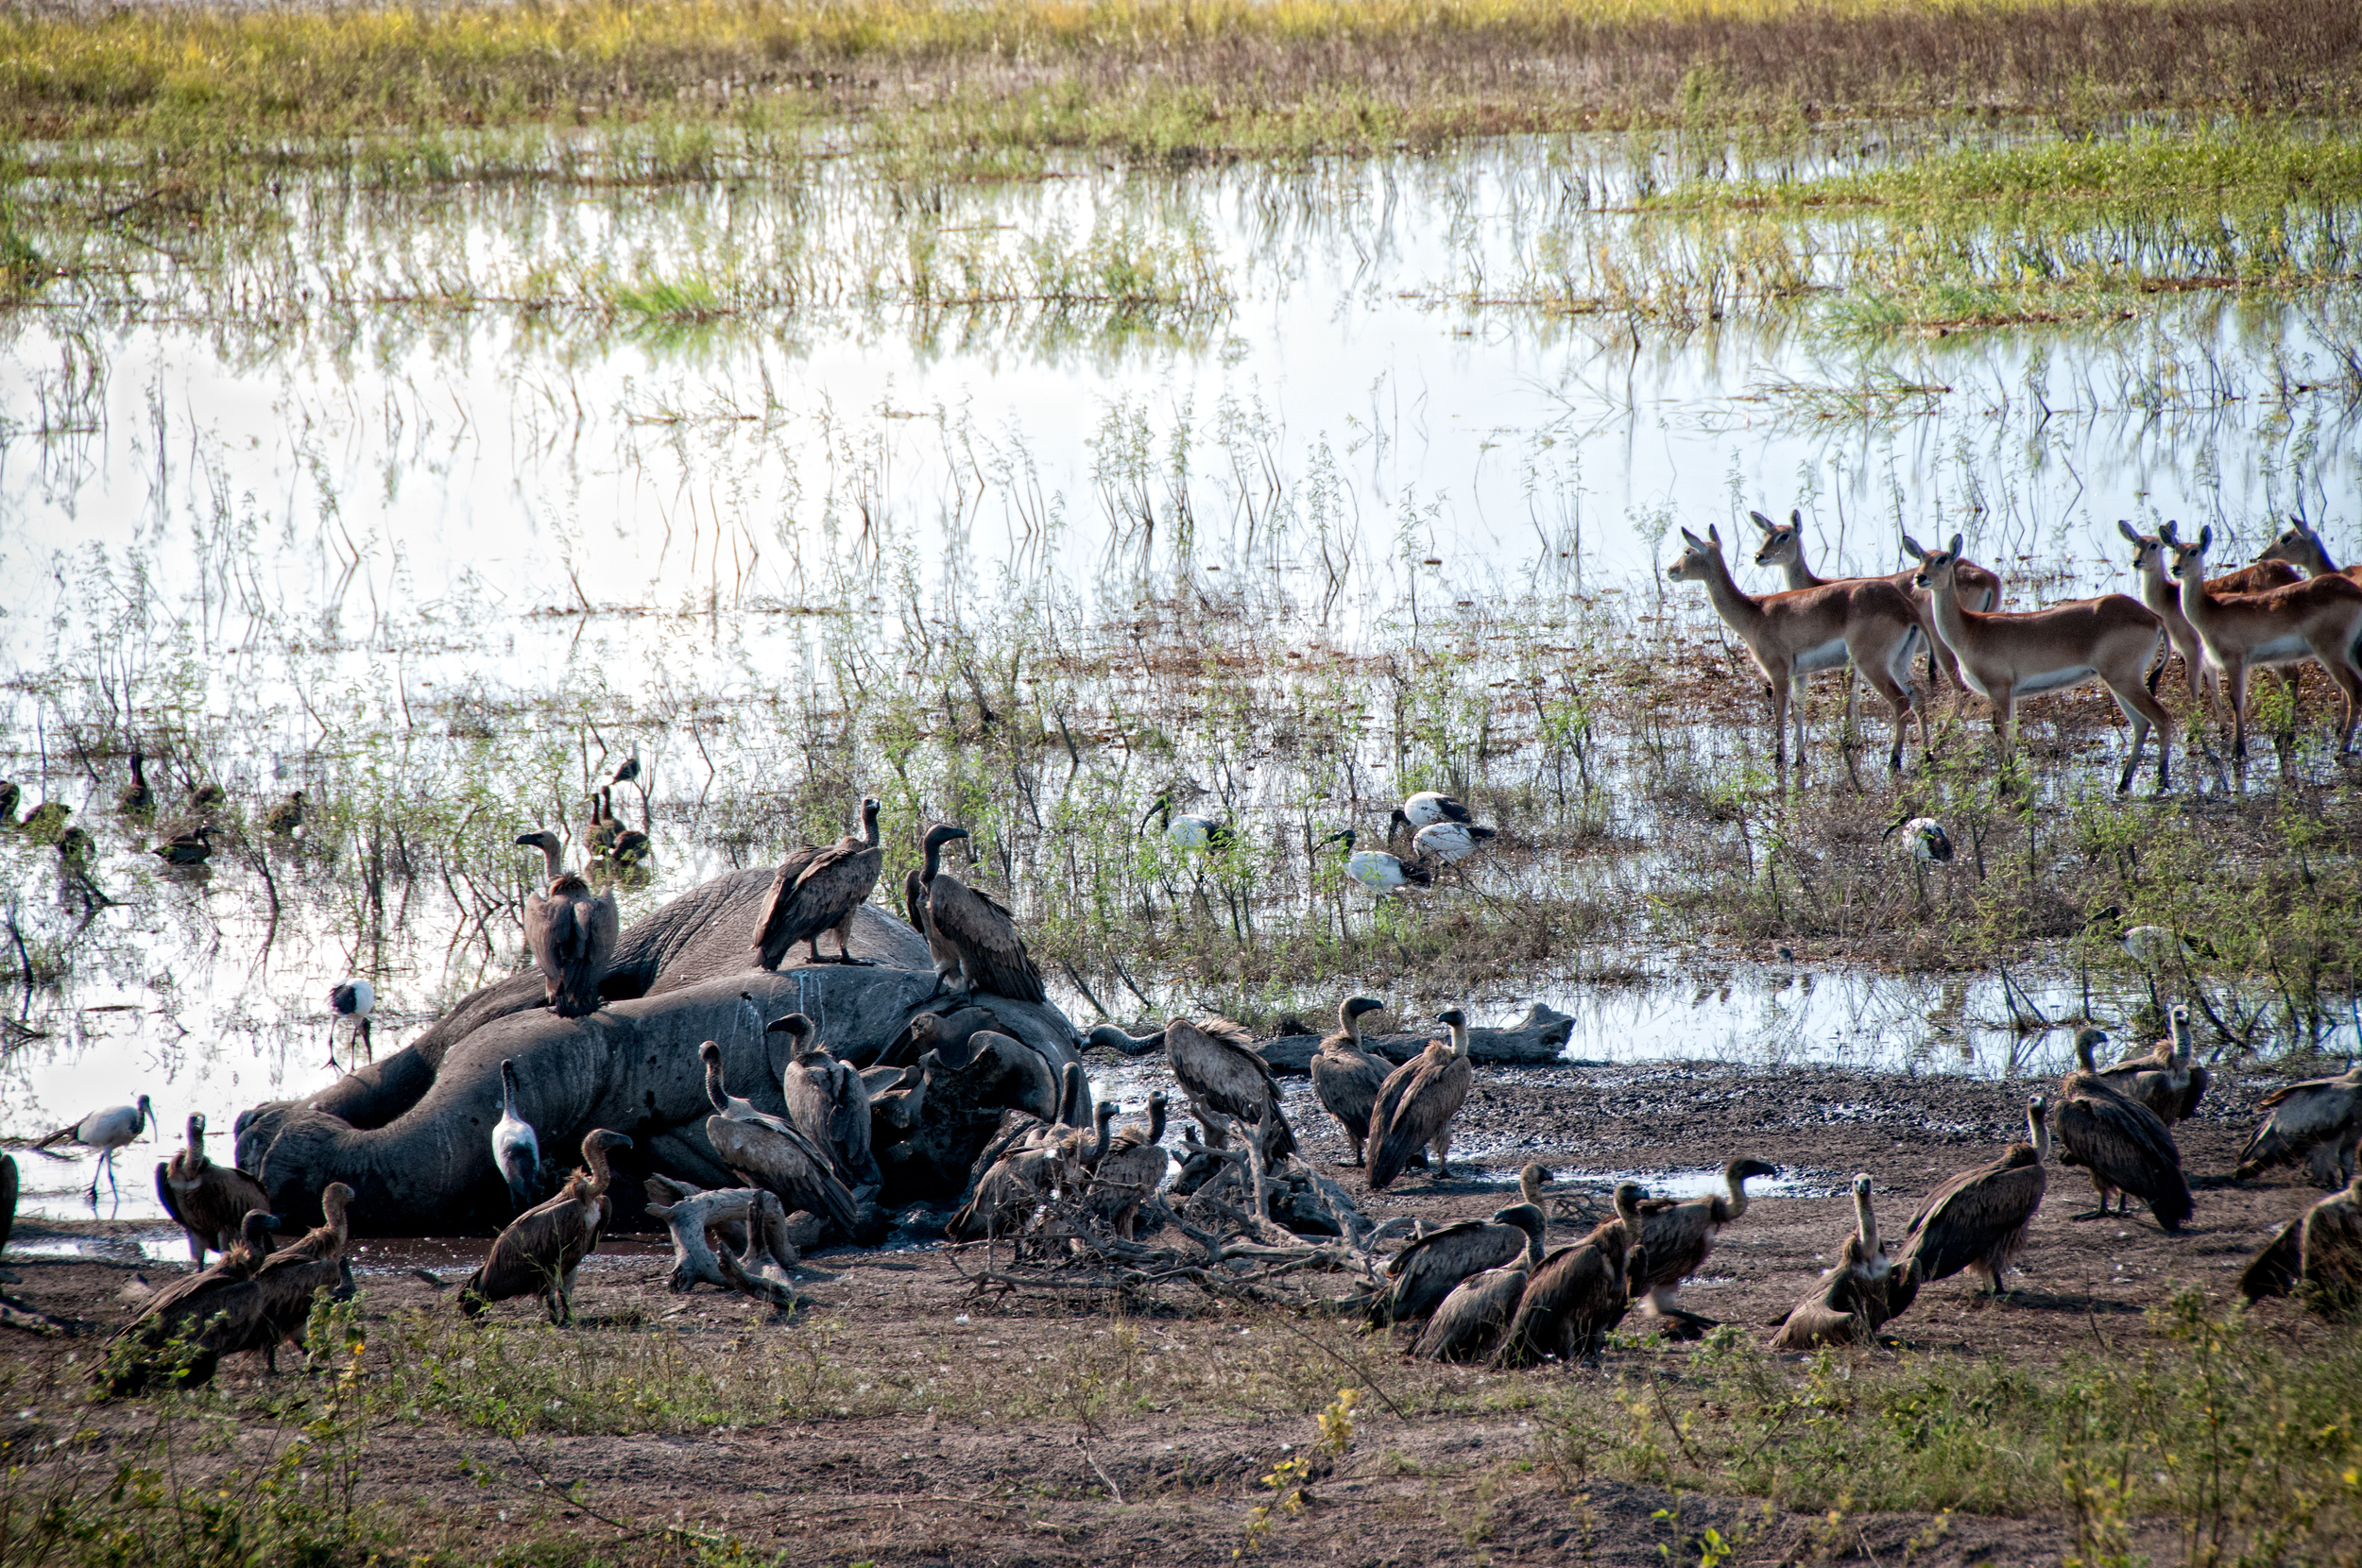 Elephant Carcass, with Vultures. Chobe River